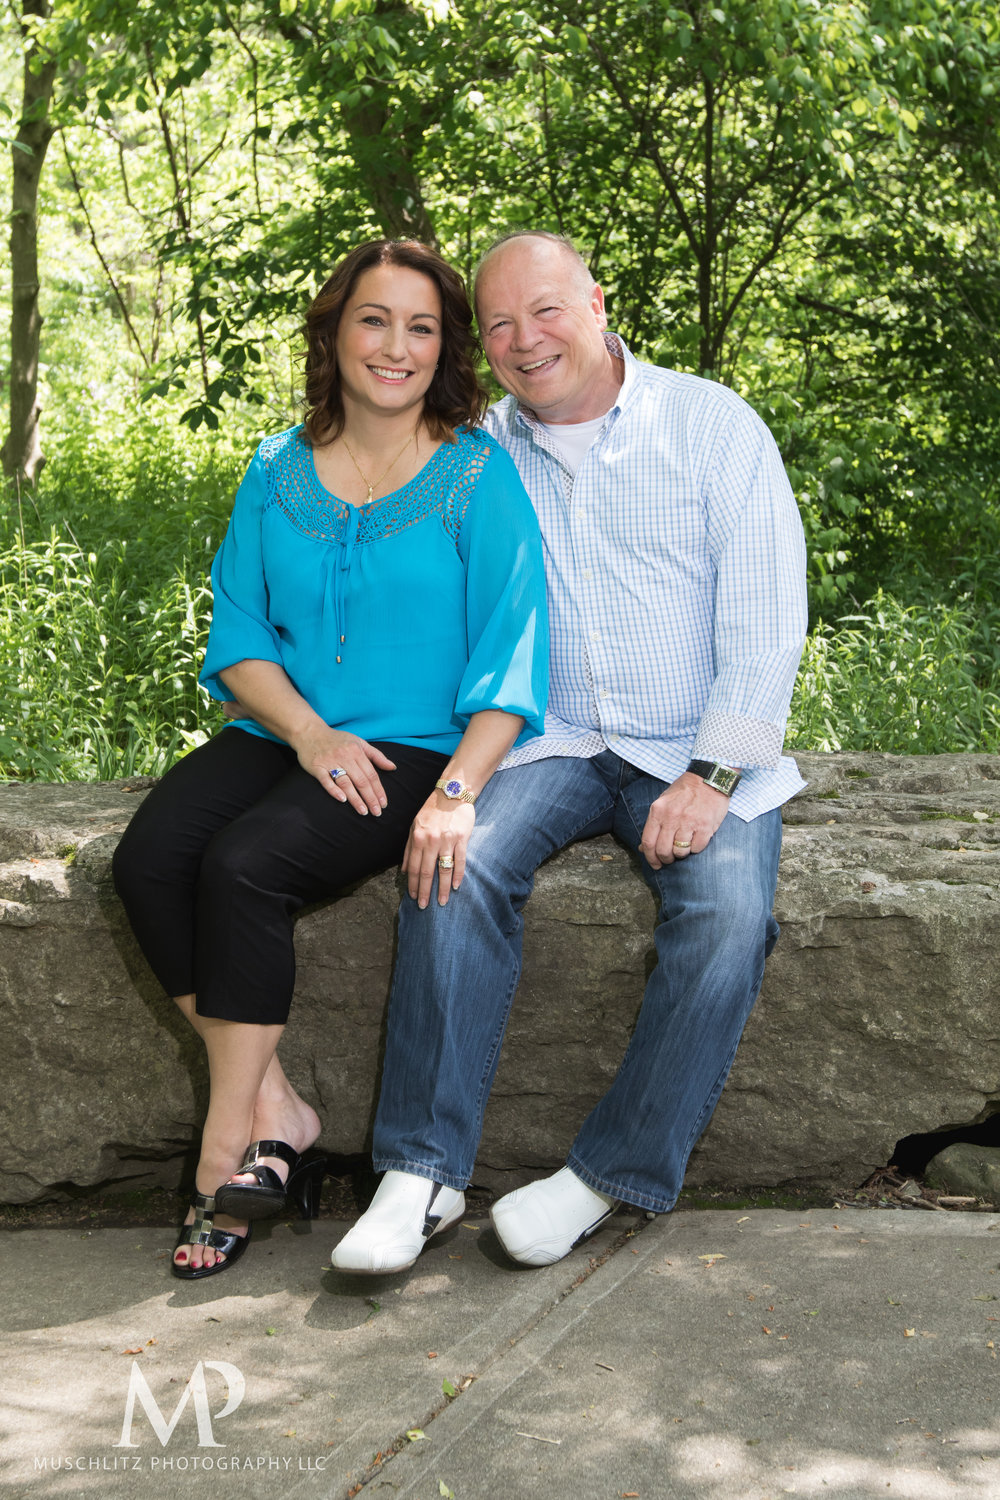 anniversary-couple-portrait-session-creekside-park-plaza-gahanna-ohio-boxer-dog-muschlitz-photography-001.JPG